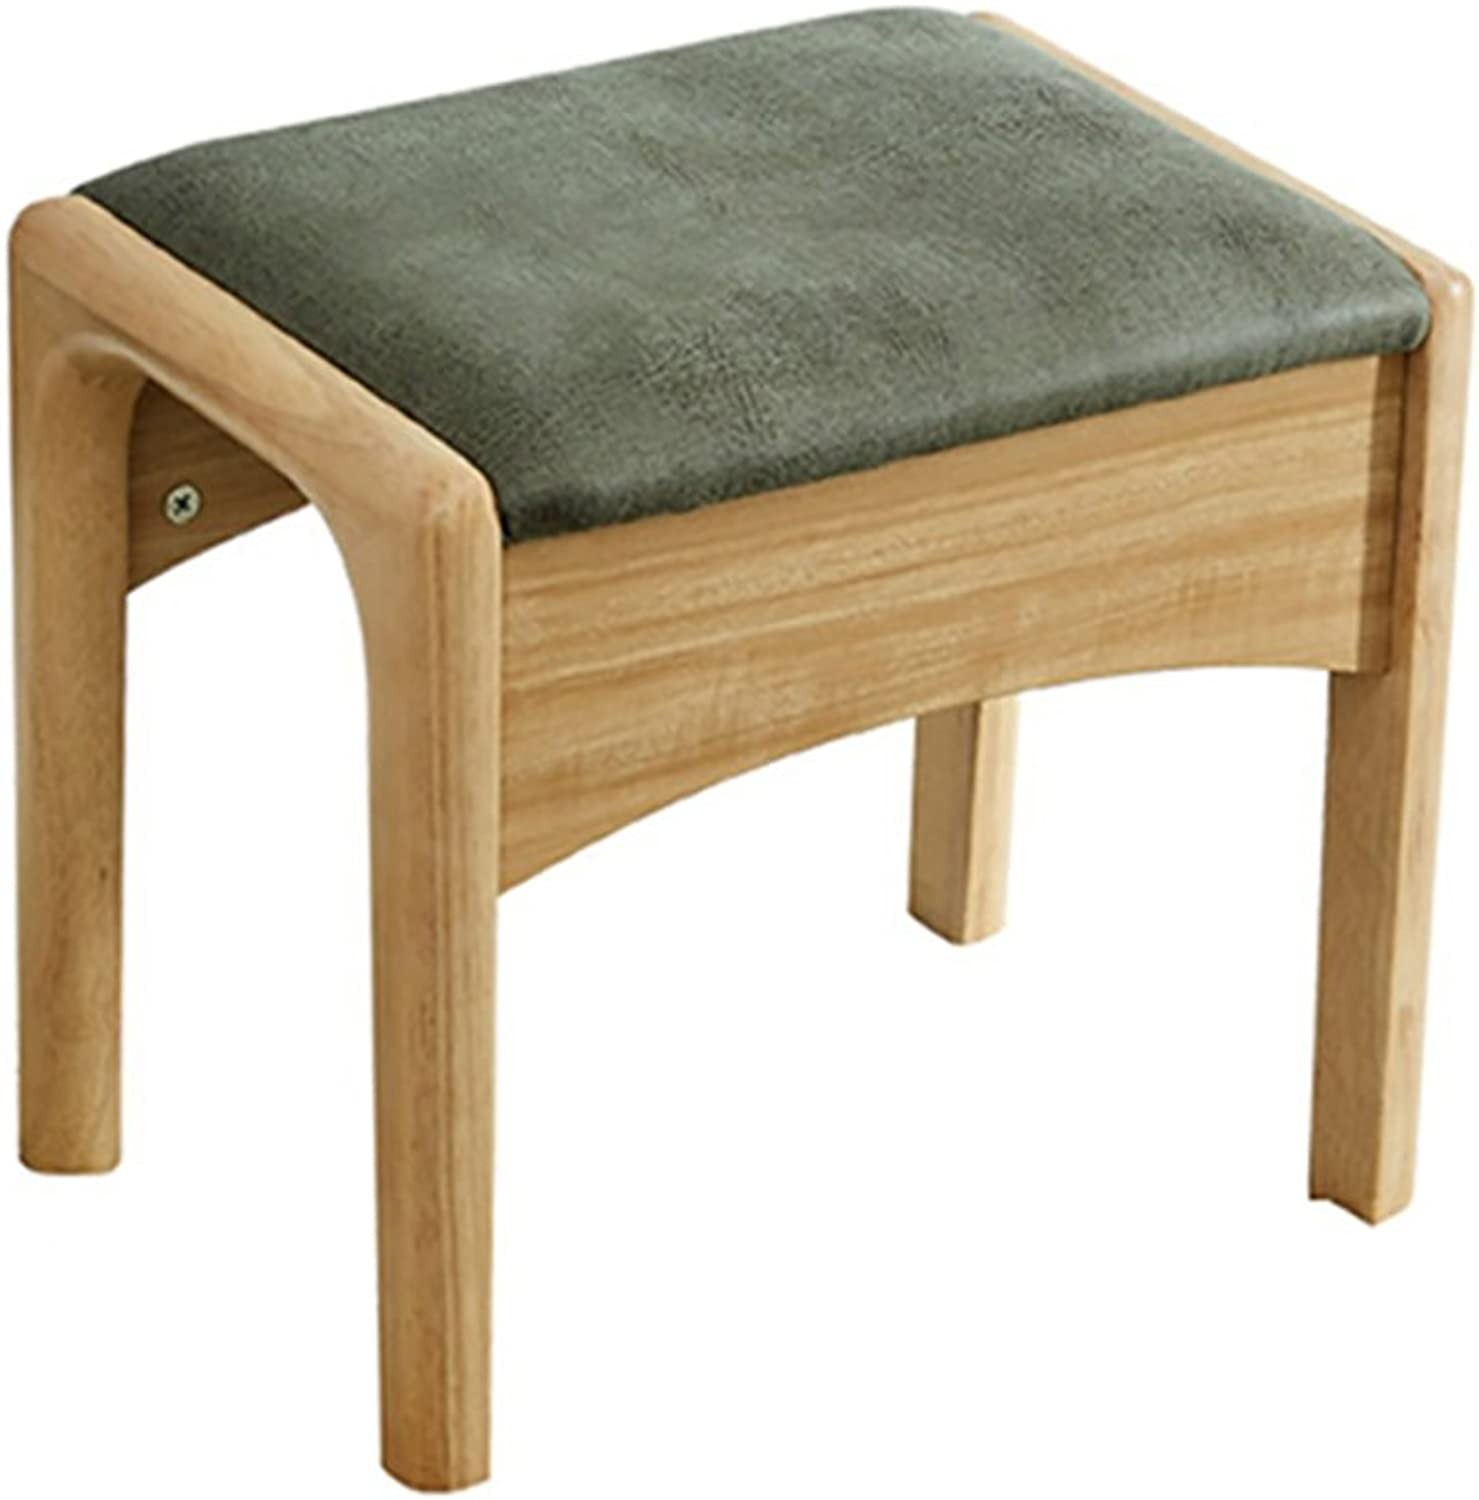 European Chair Solid Wood Makeup Stool, Small Apartment, shoes Bench, Square Stool, Bedroom, Simple Dressing Stool